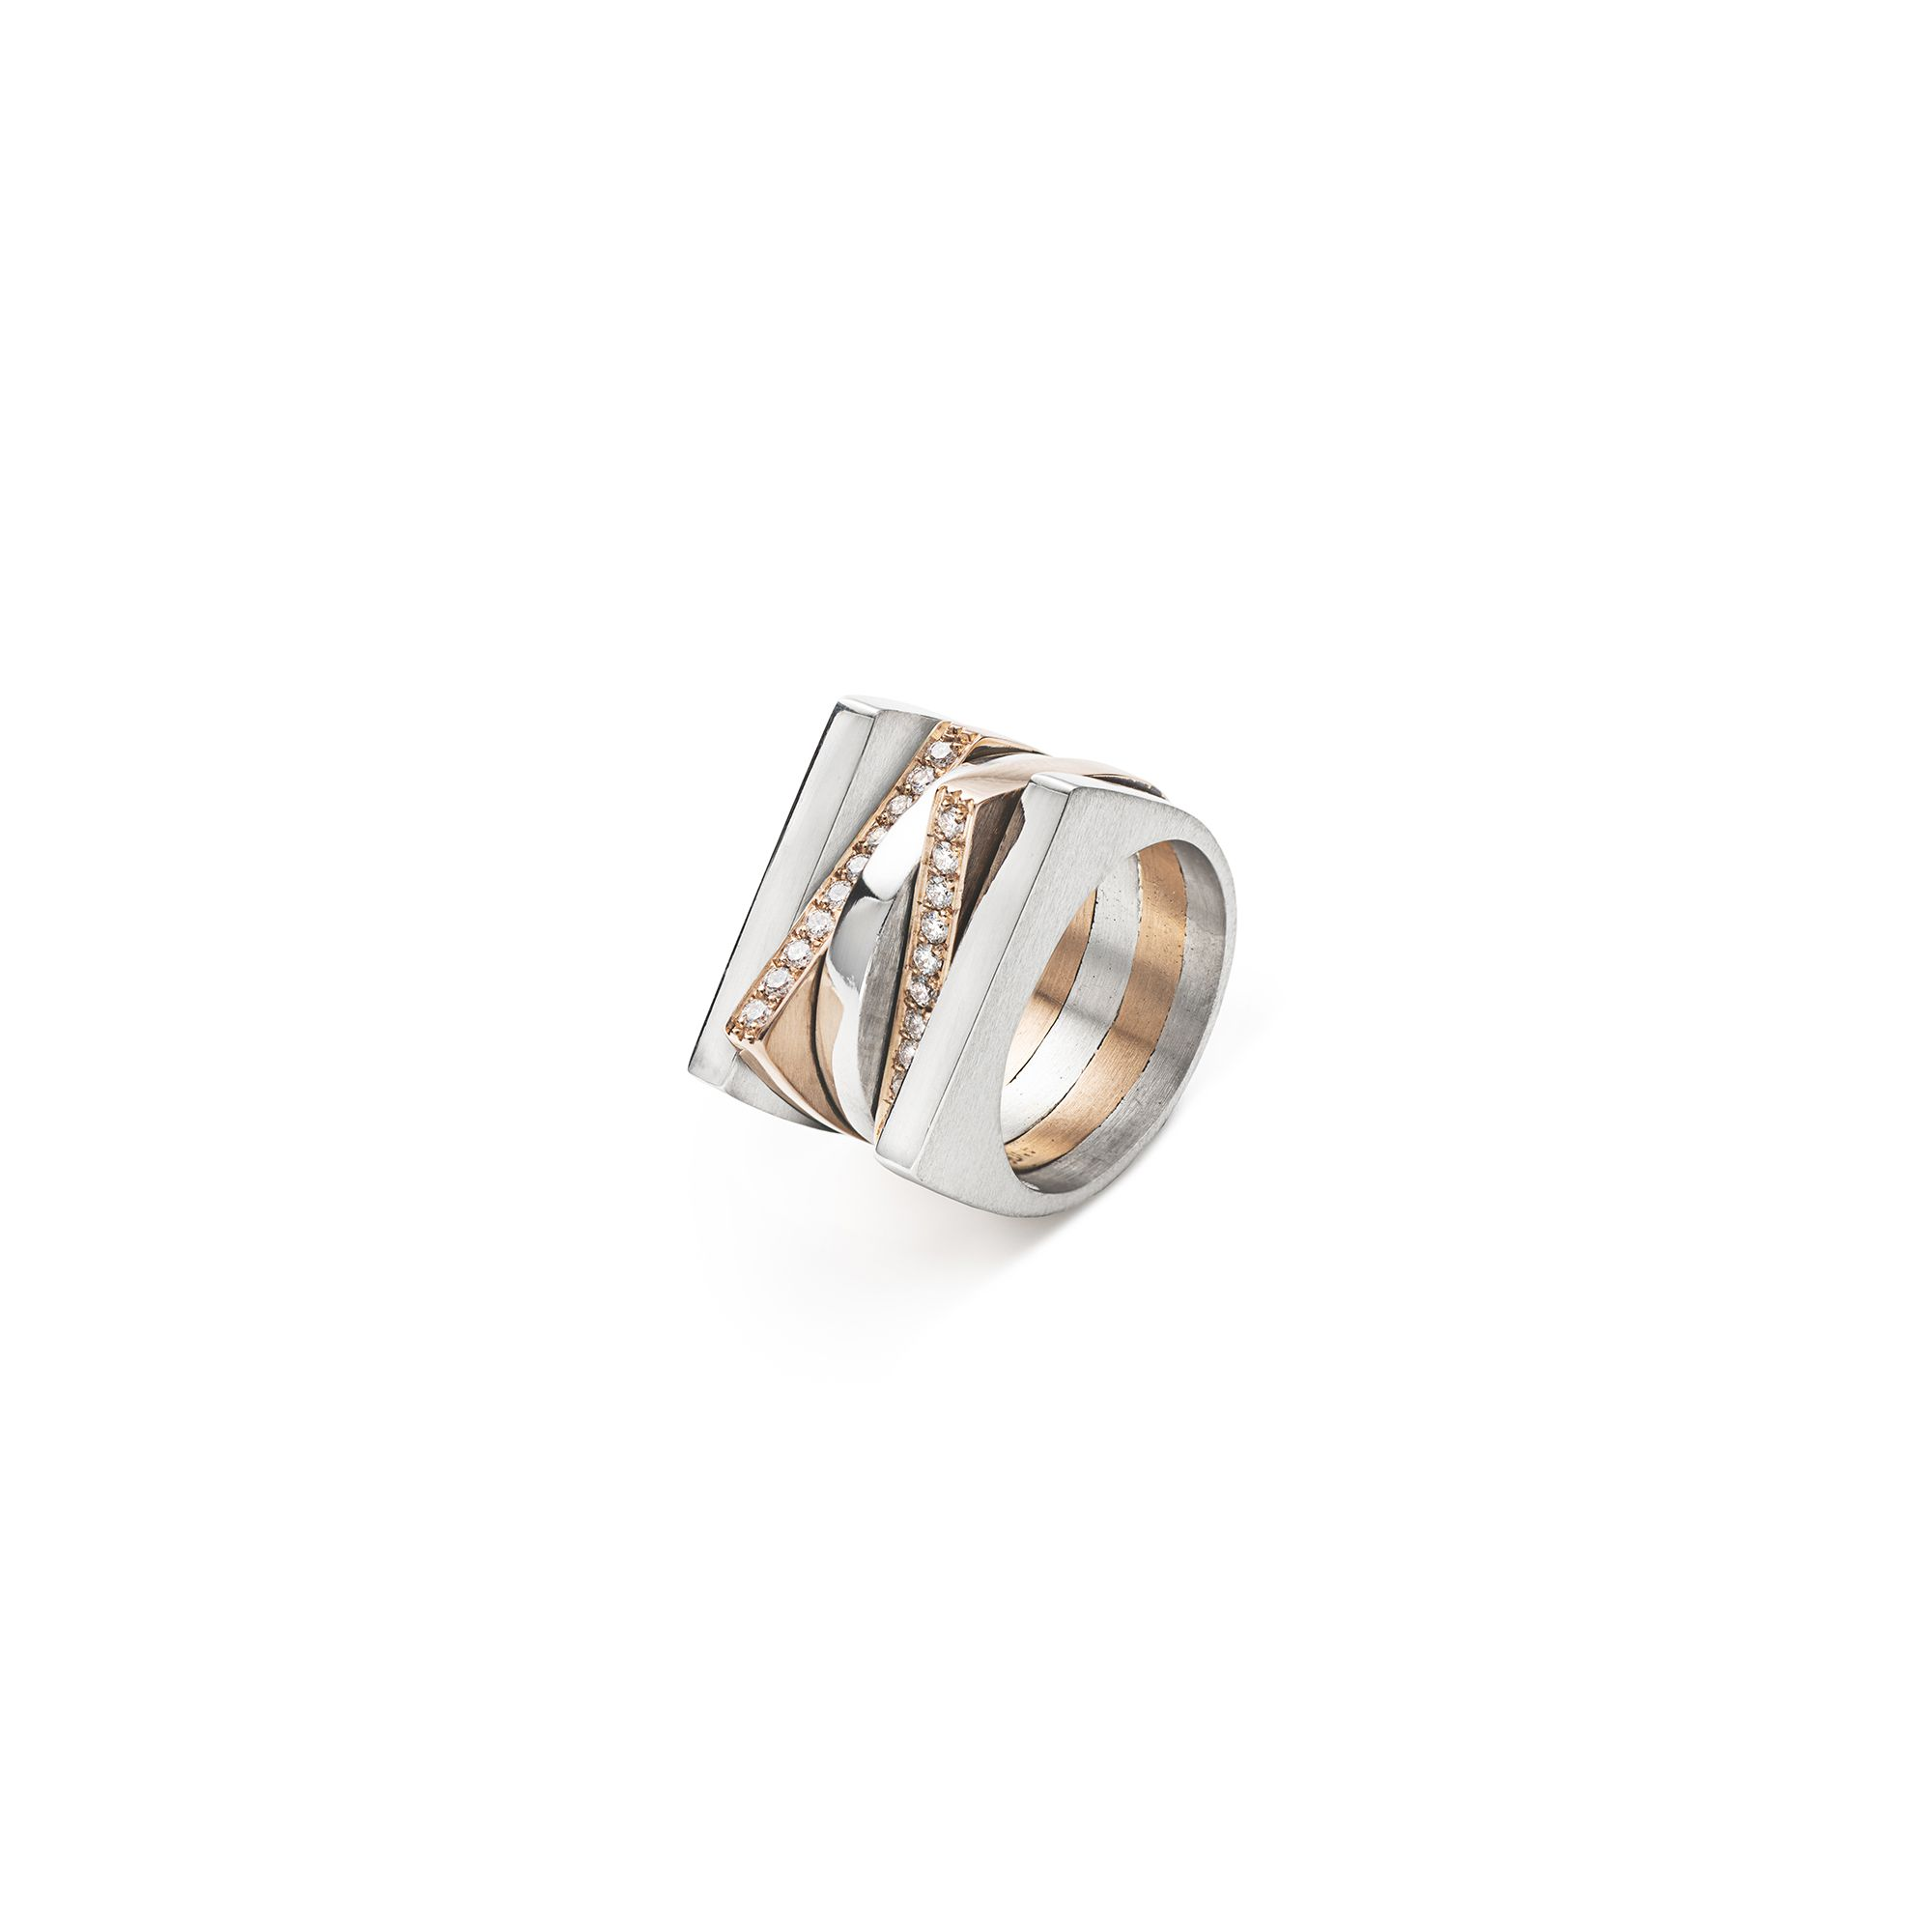 'Congiunzioni' 5 elements mix ring in silver and rose gold Silver and rose gold 9 kt with pave diamonds